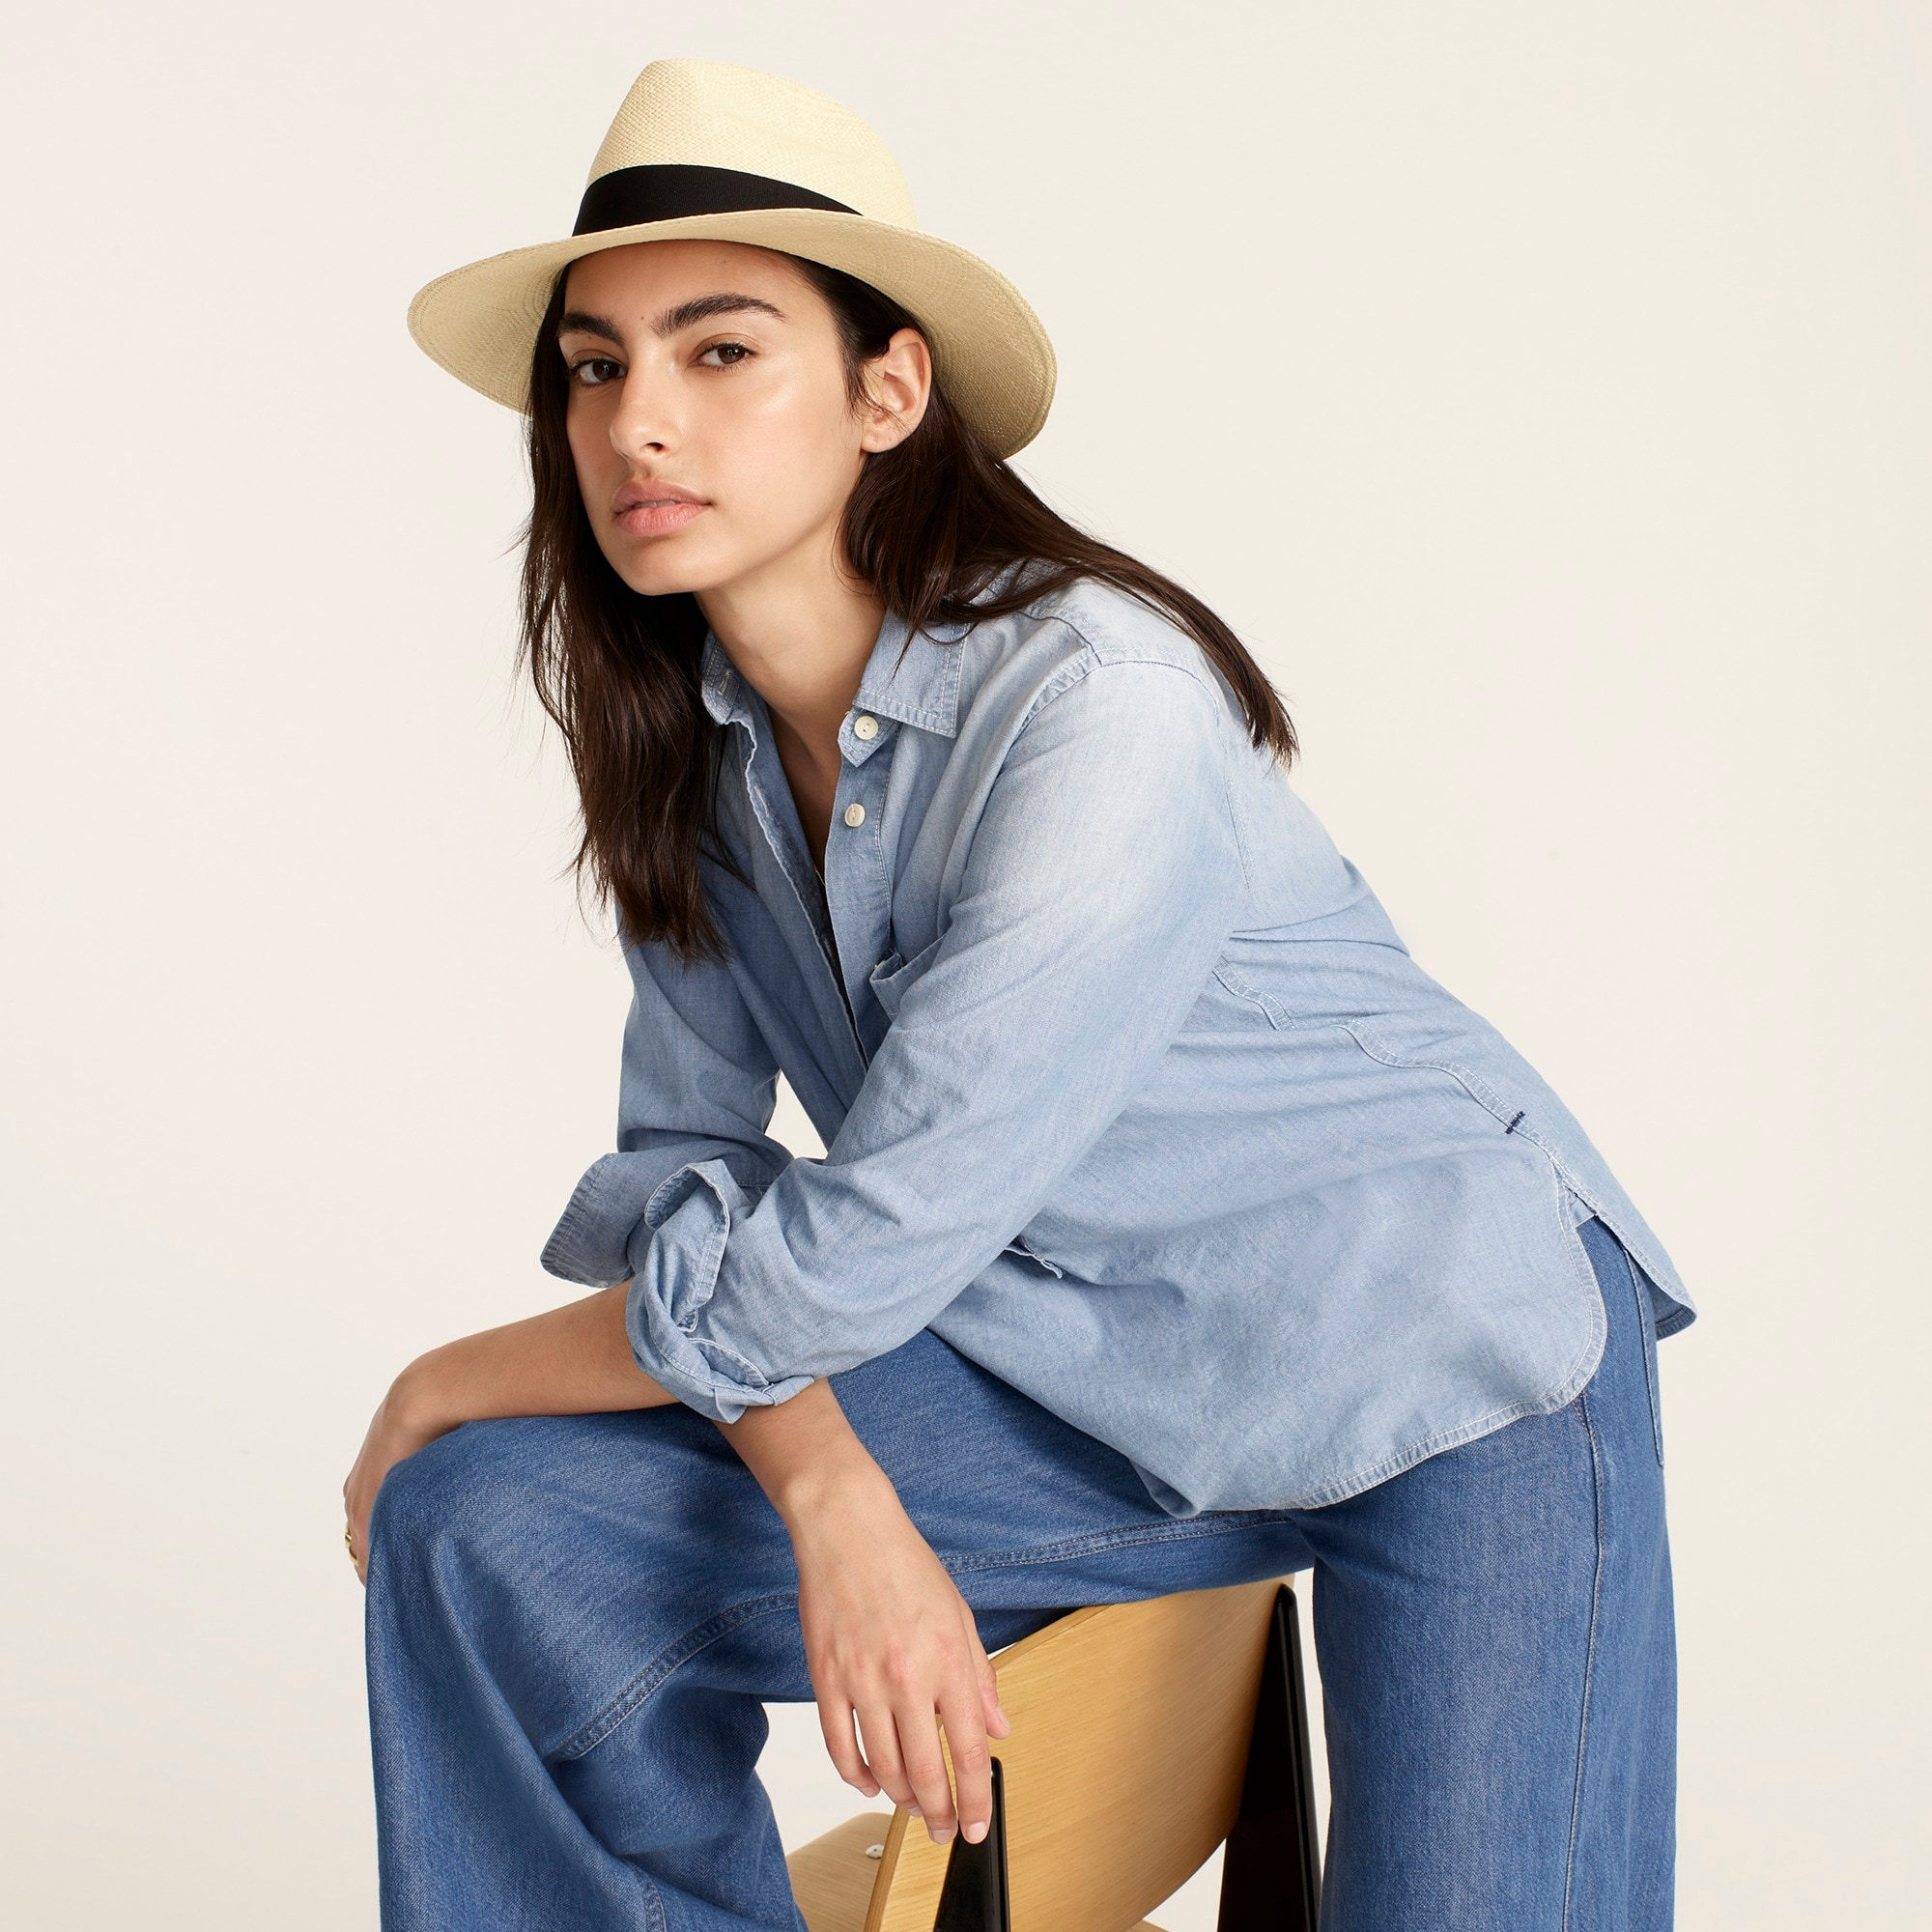 panama hat : women's hats